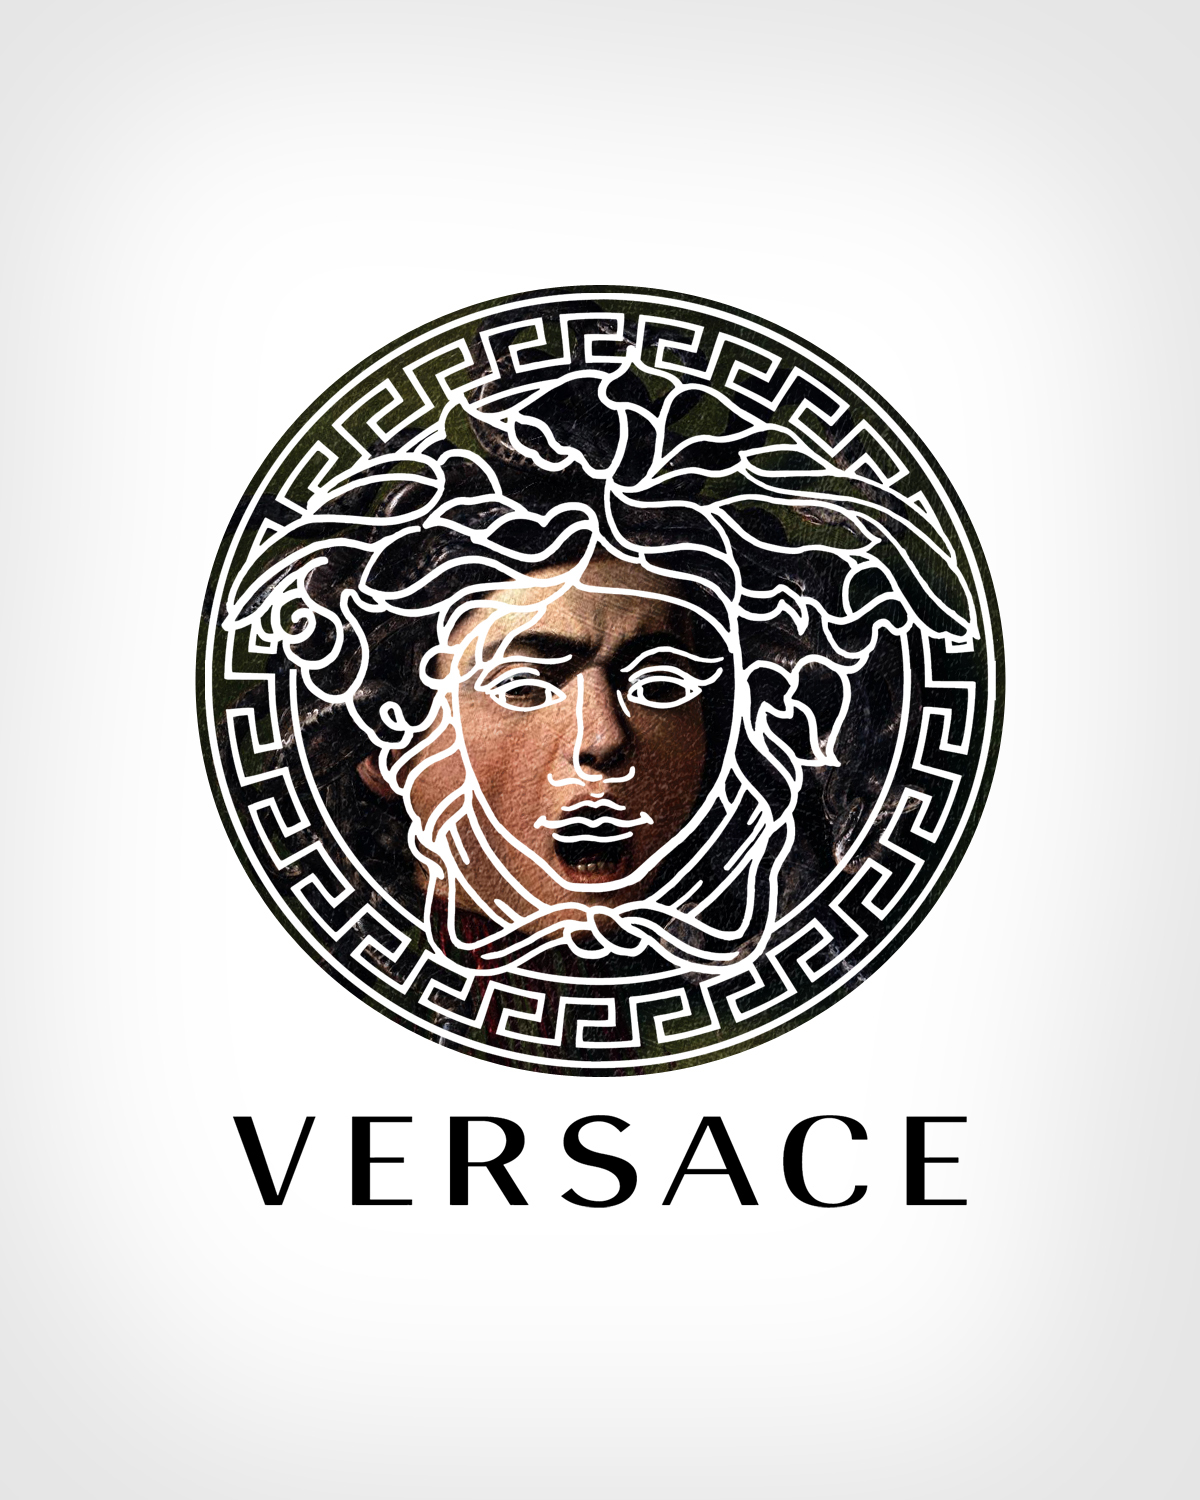 Versace Design Logo | www.pixshark.com - Images Galleries ...